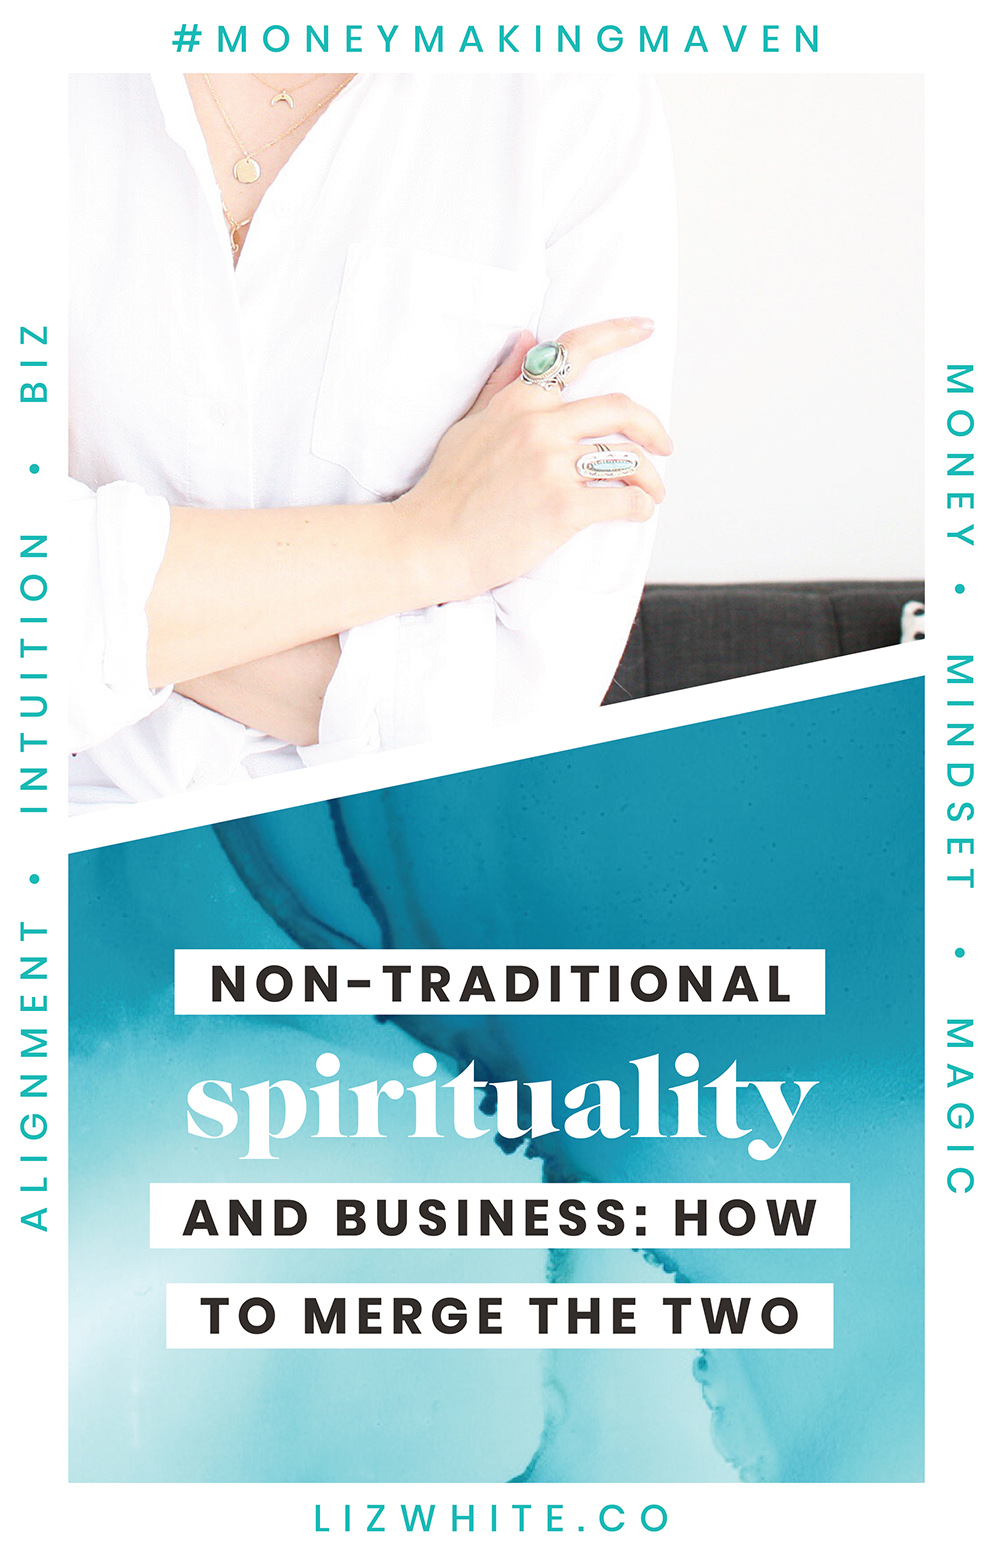 Bringing Spirituality Into Your Business | Liz White | #spirituality #moneymakingmaven #creativepreneur #intuitivebusiness | Let's chat about how bringing spirituality into our business is taboo rather than mainstream. Earlier, I shared how I gained confidence on adding my spirituality into my business but today I want to talk about how you can as well.